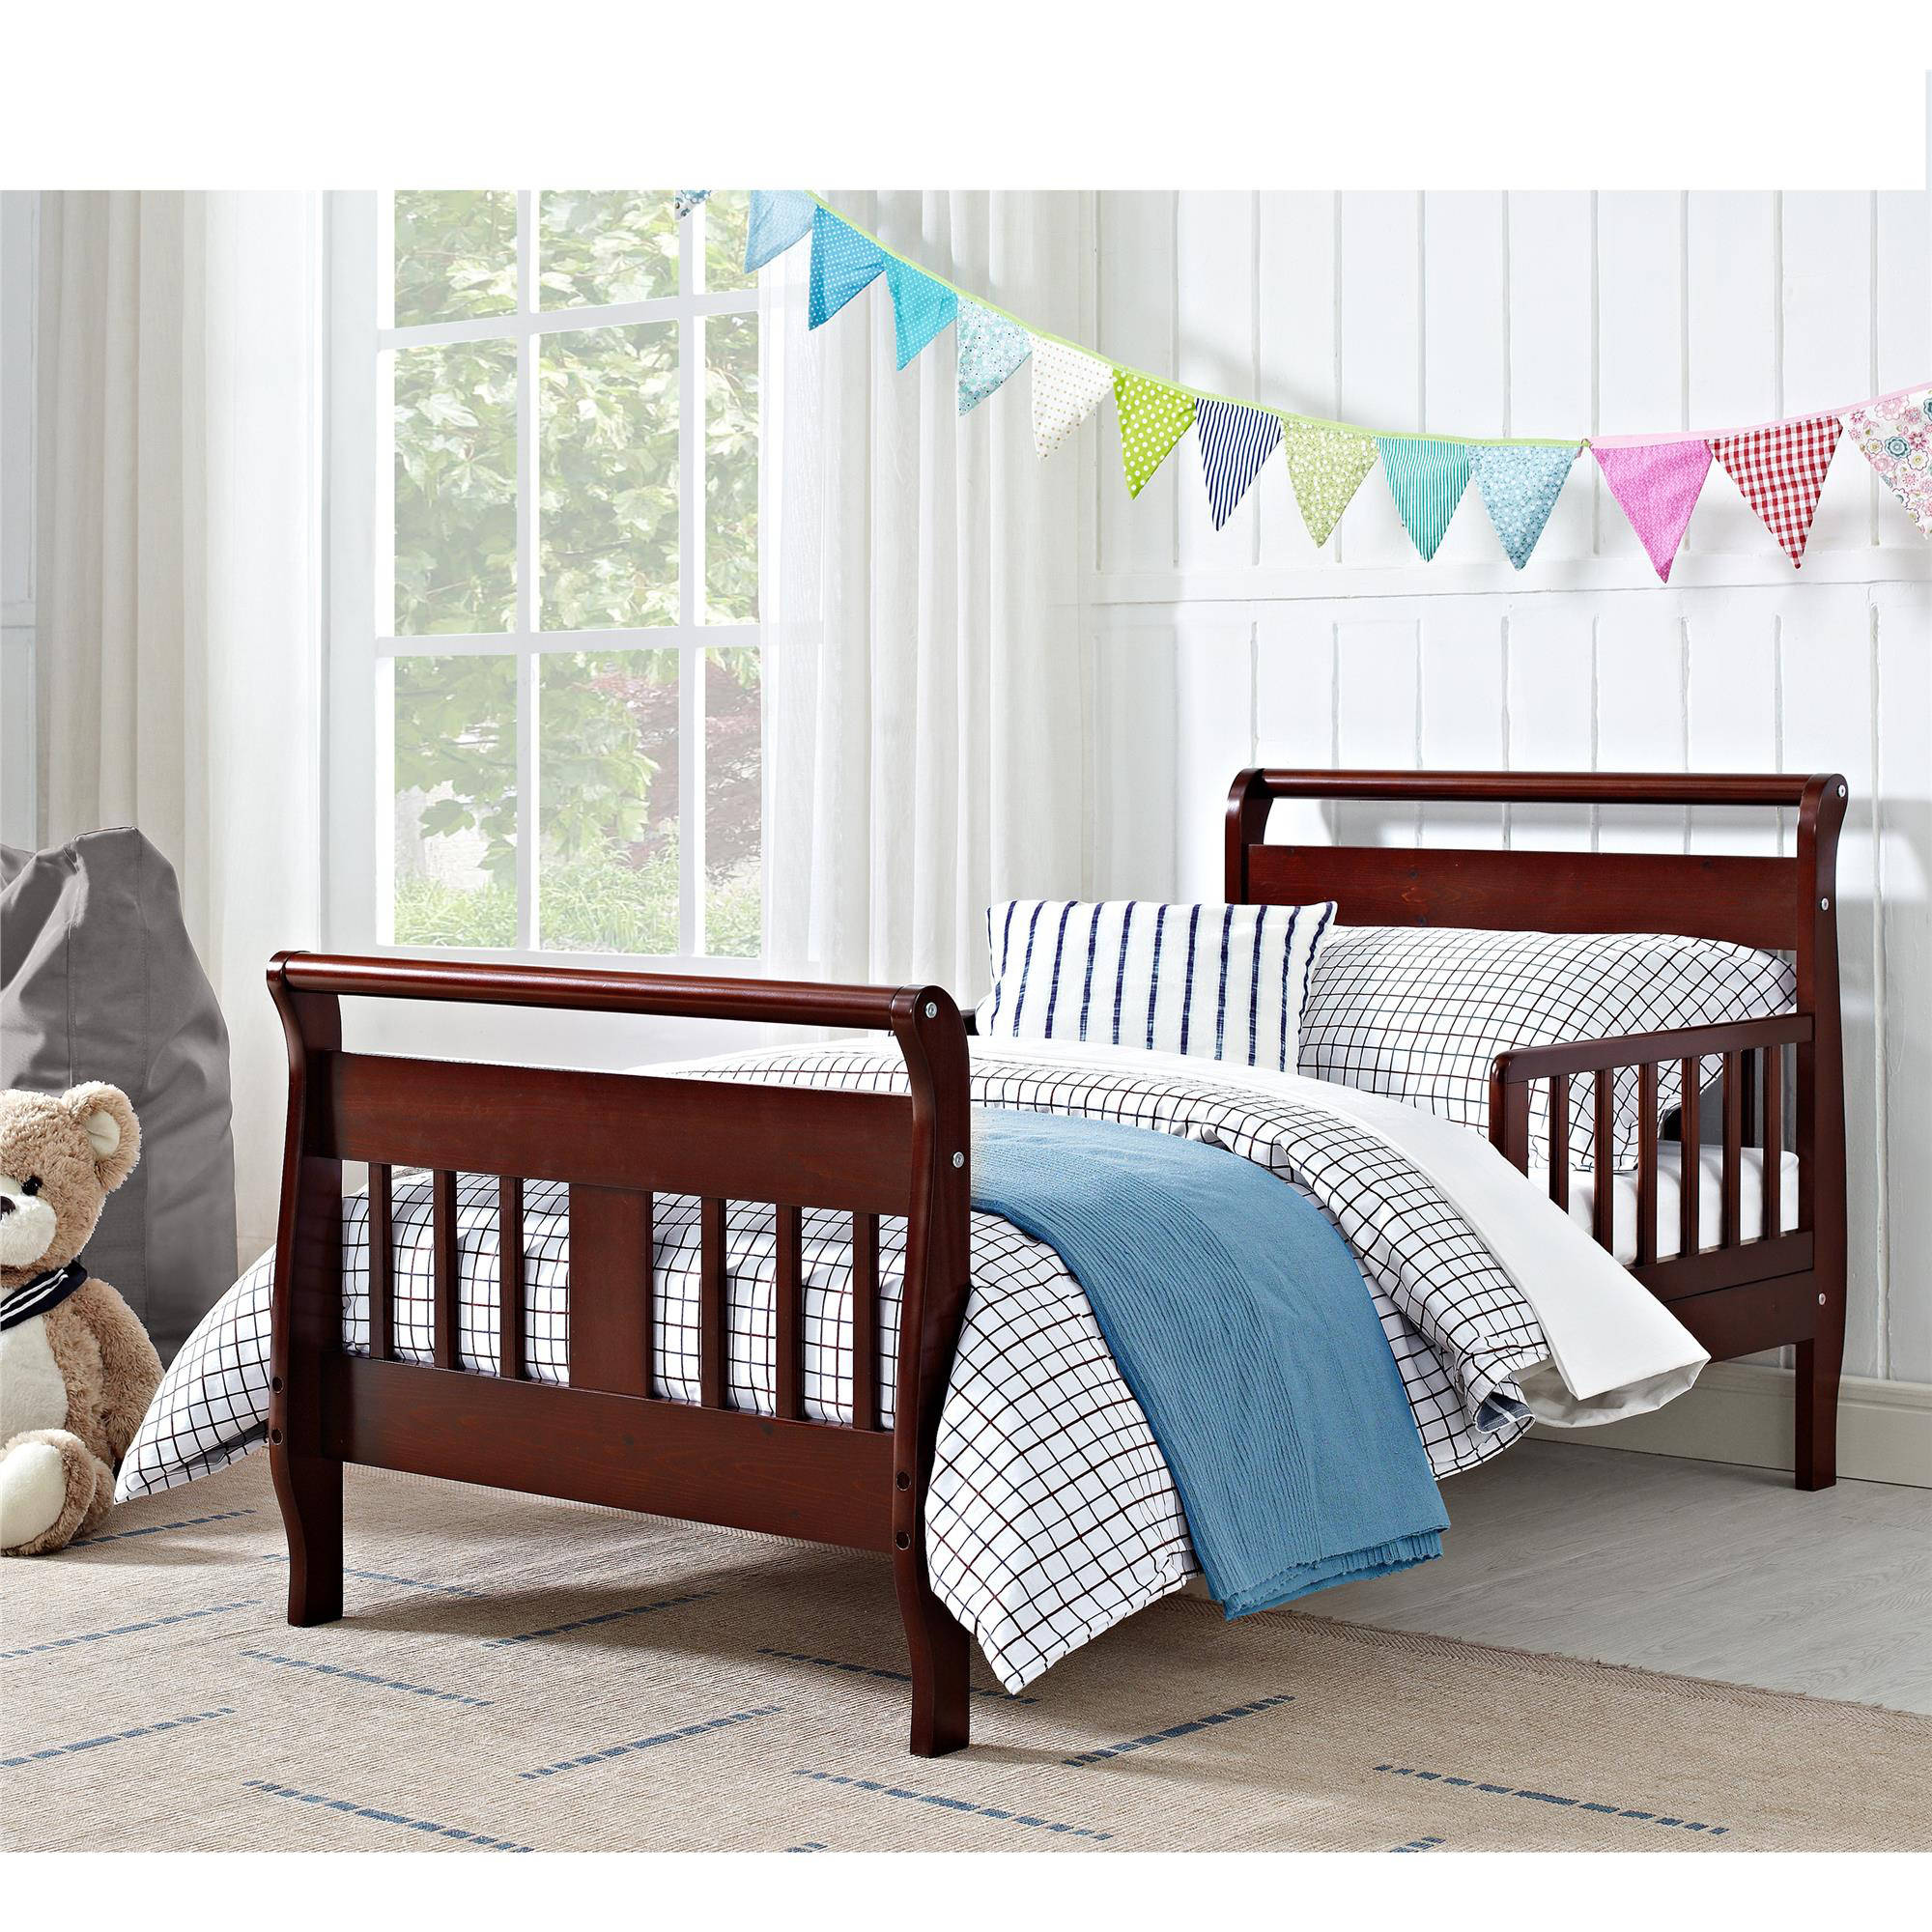 Amazing toddler bed with mattress baby relax toddler bed w/toddler mattress value bundle (your choice in  finish) xsnrkag